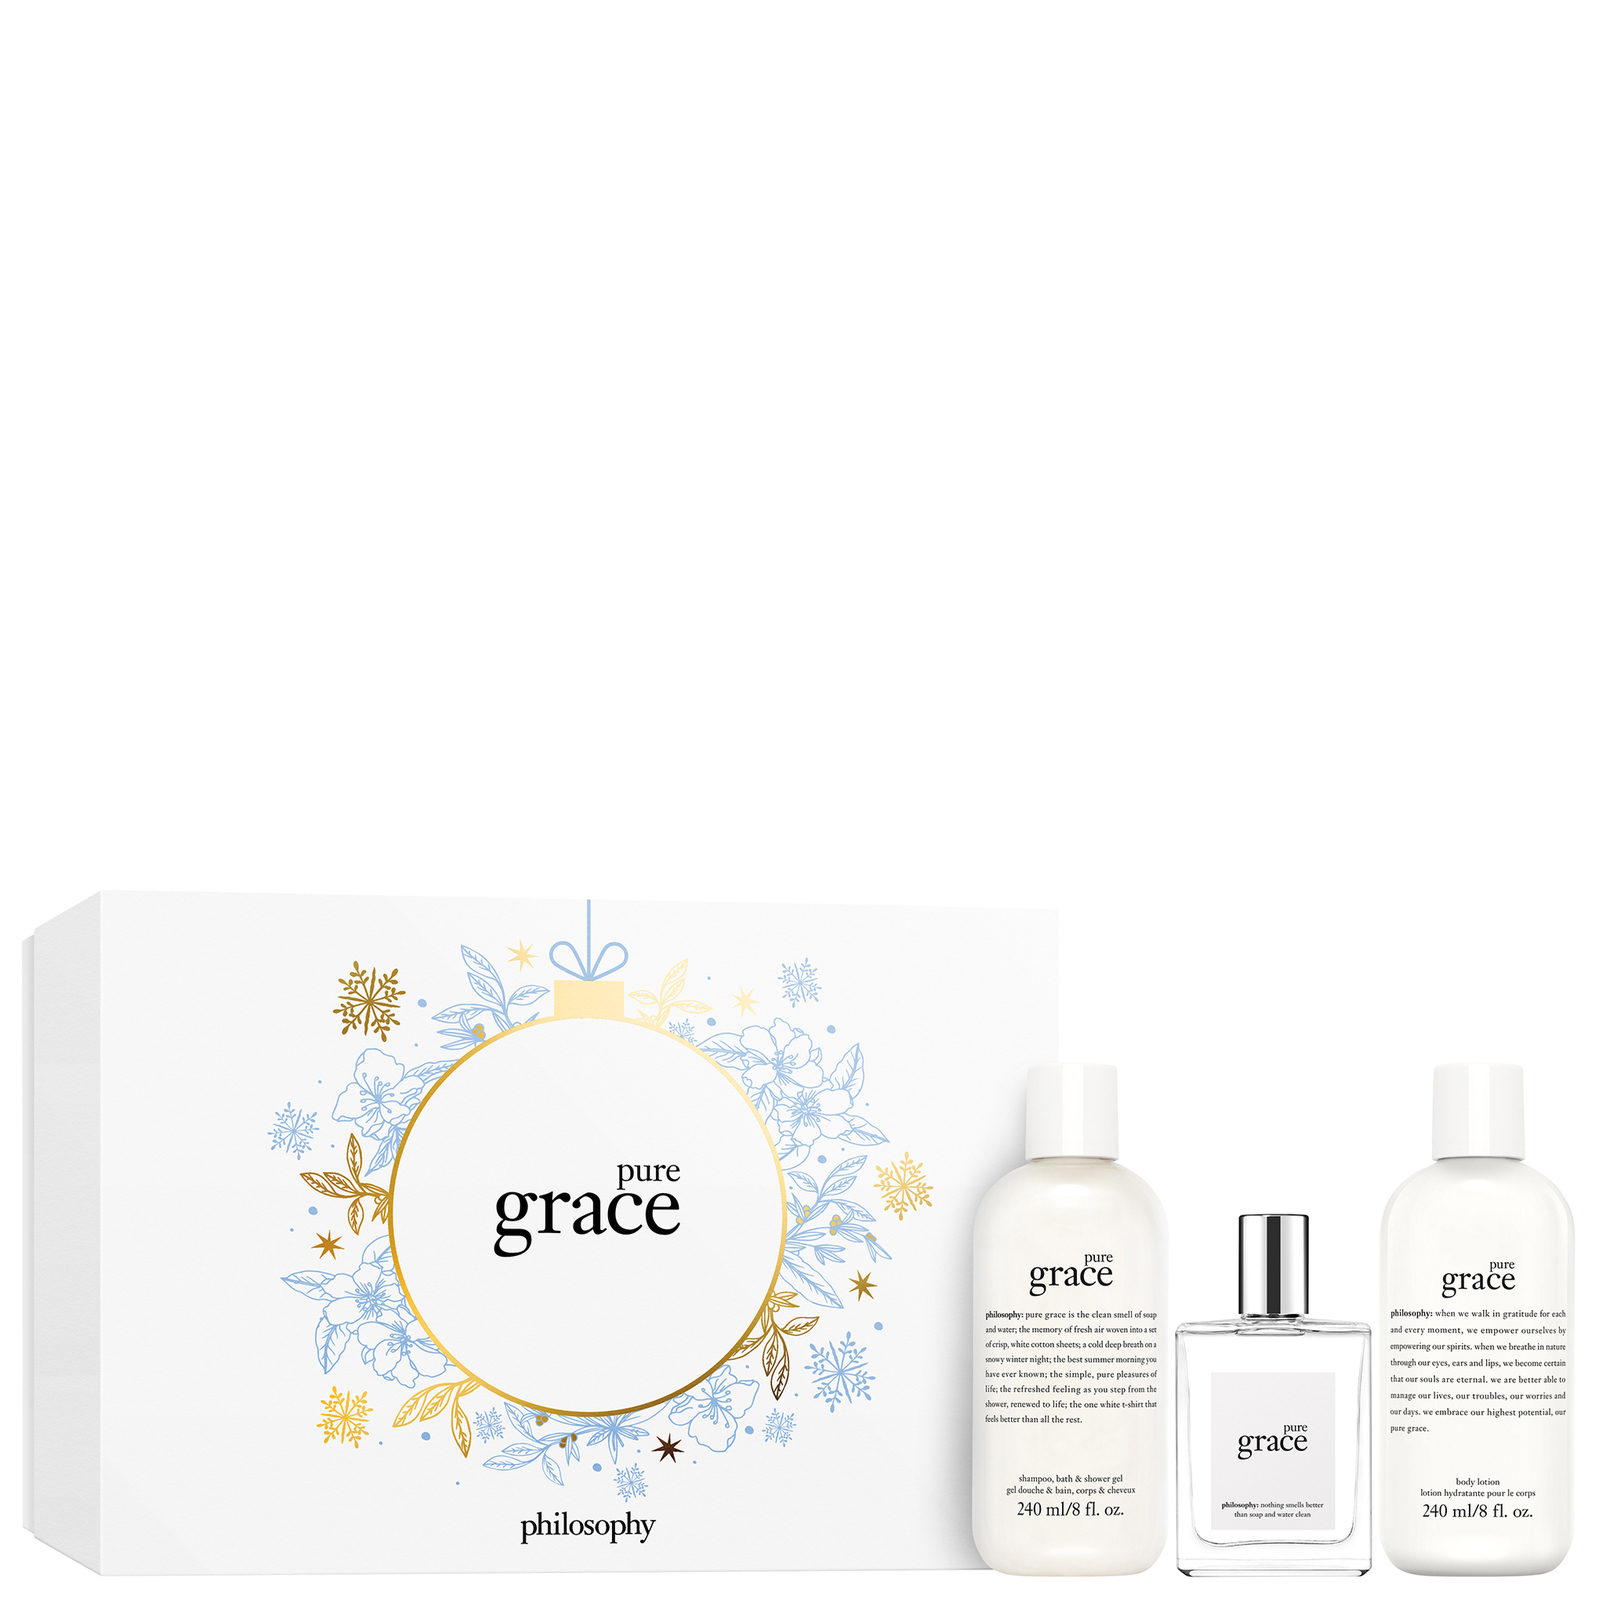 philosophy Christmas 2020 Pure Grace Gift Set